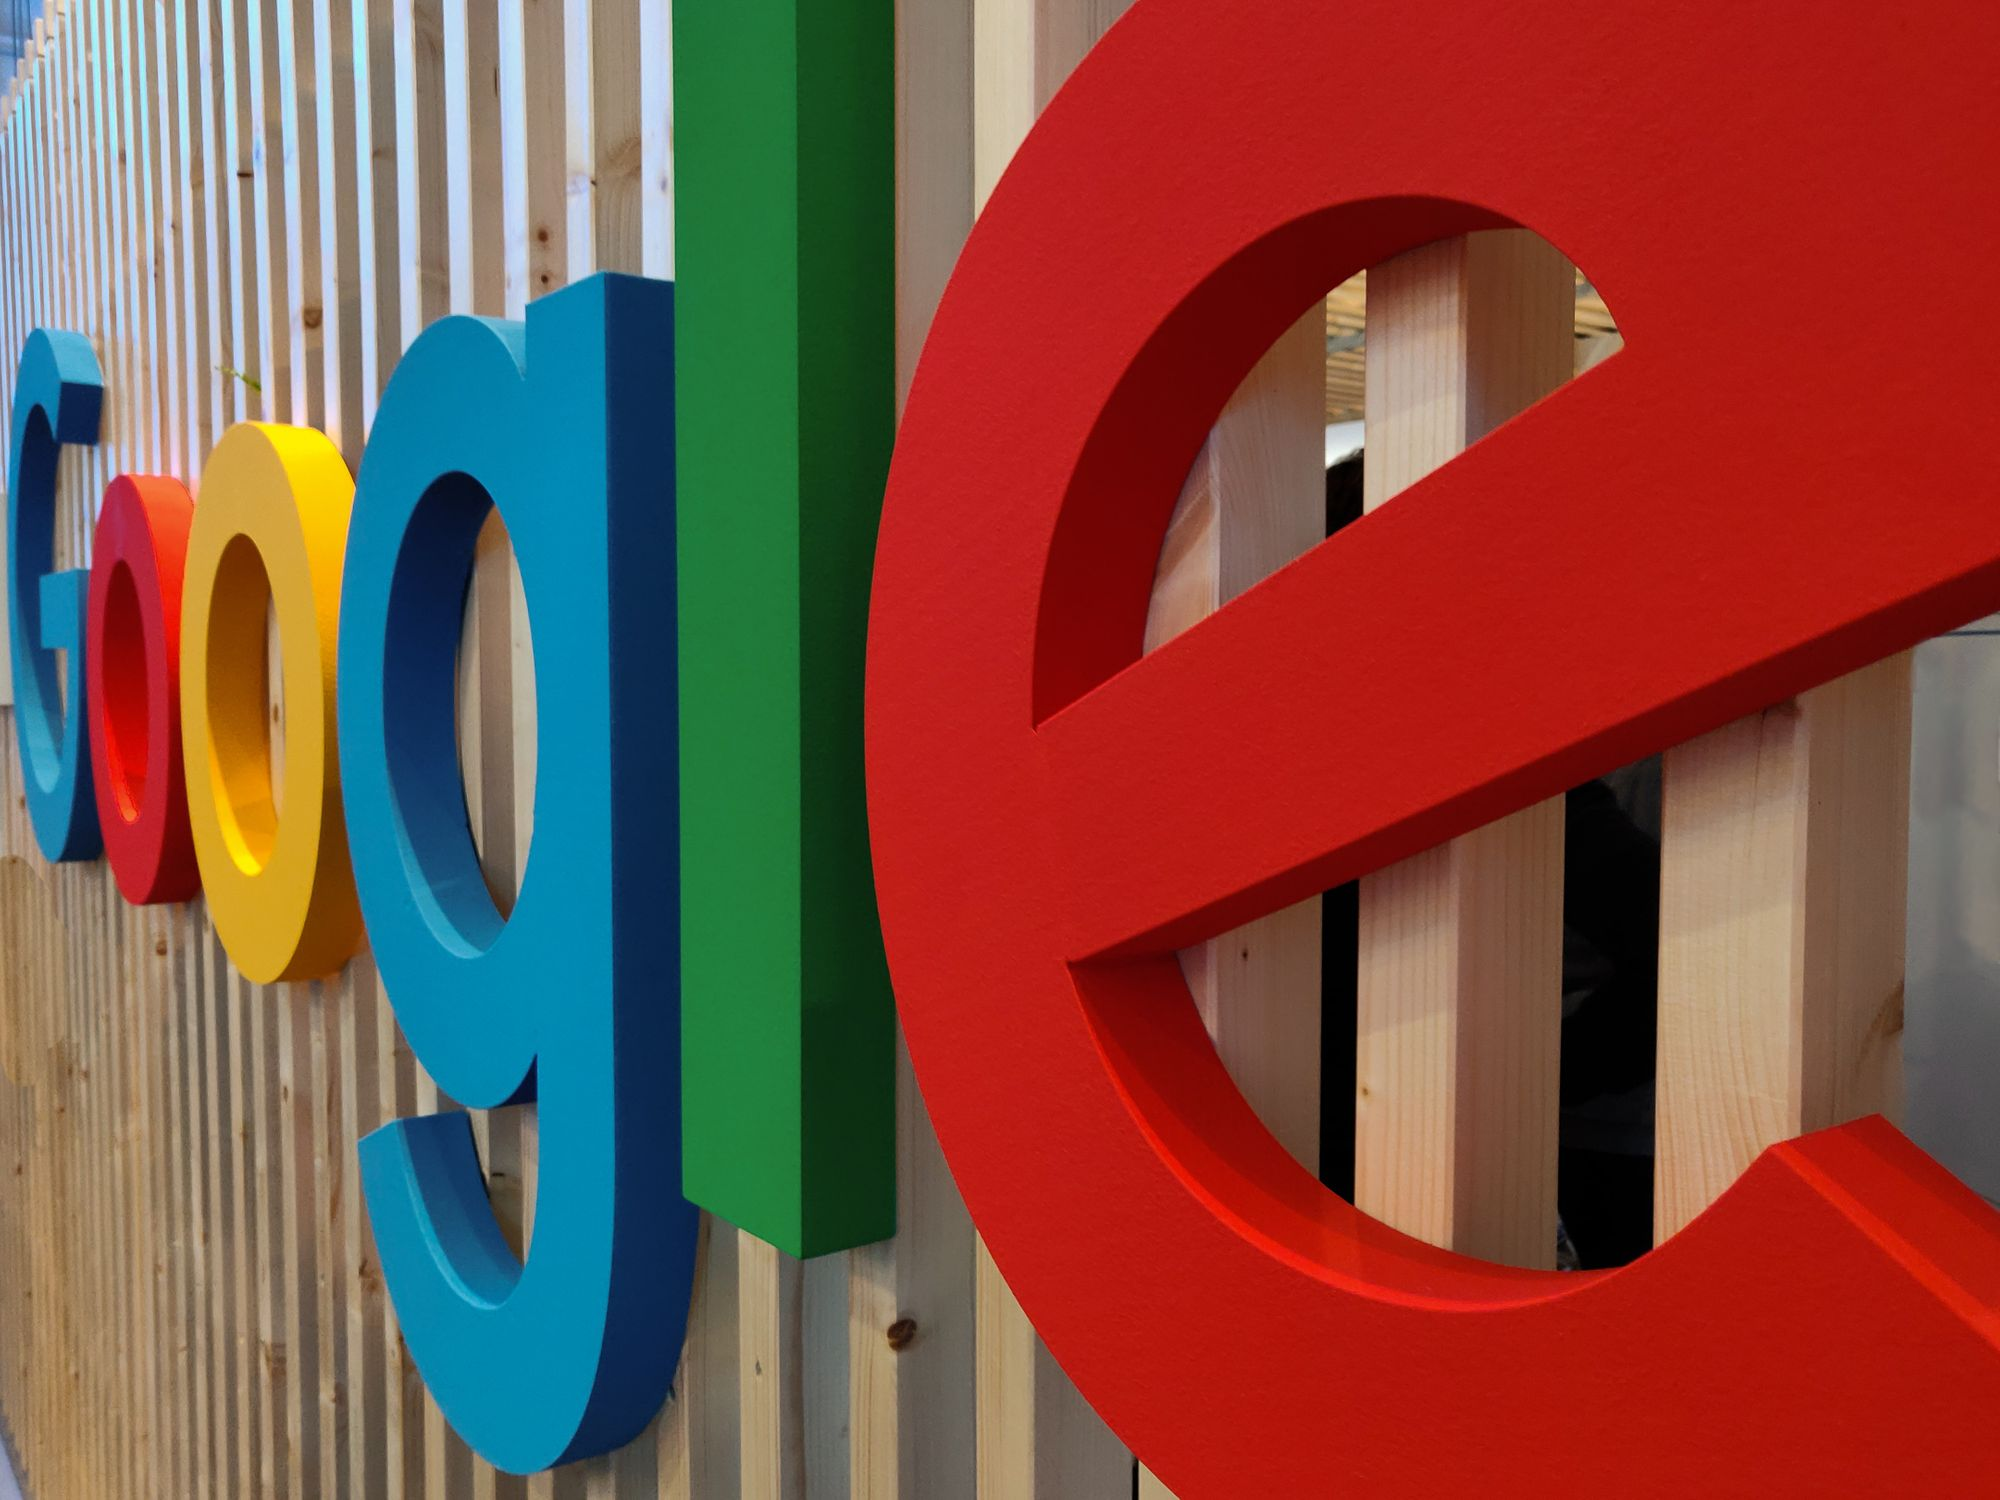 Google Vision OCR has emerged to be one of the powerful character recognizing softwares in the industry